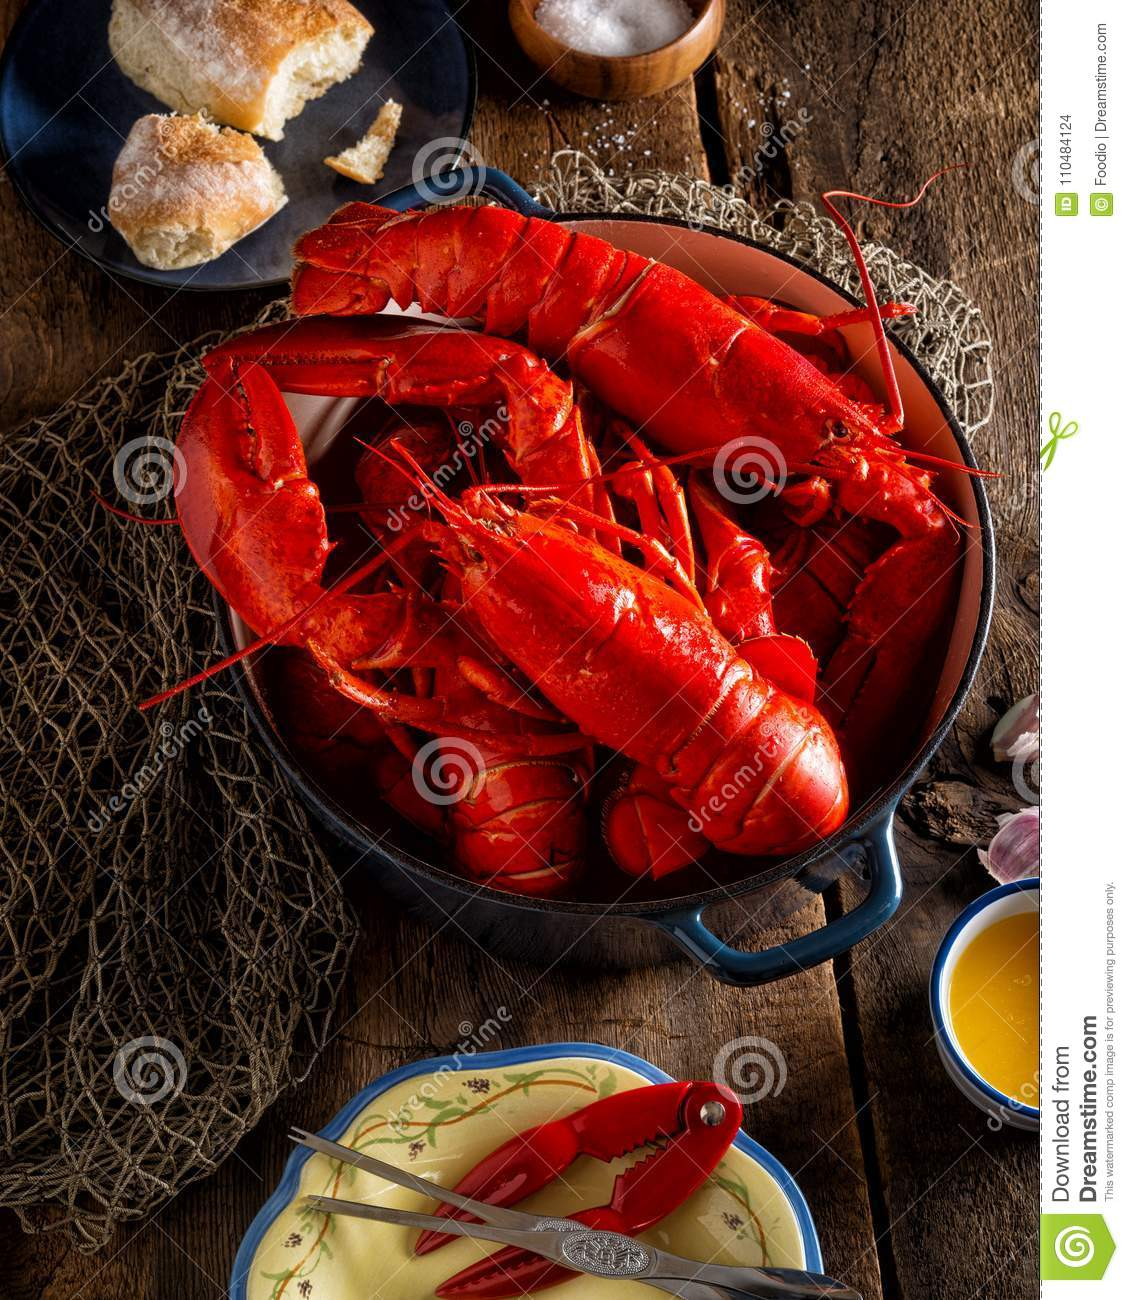 Lobsters in a pot on a rustic wooden table.